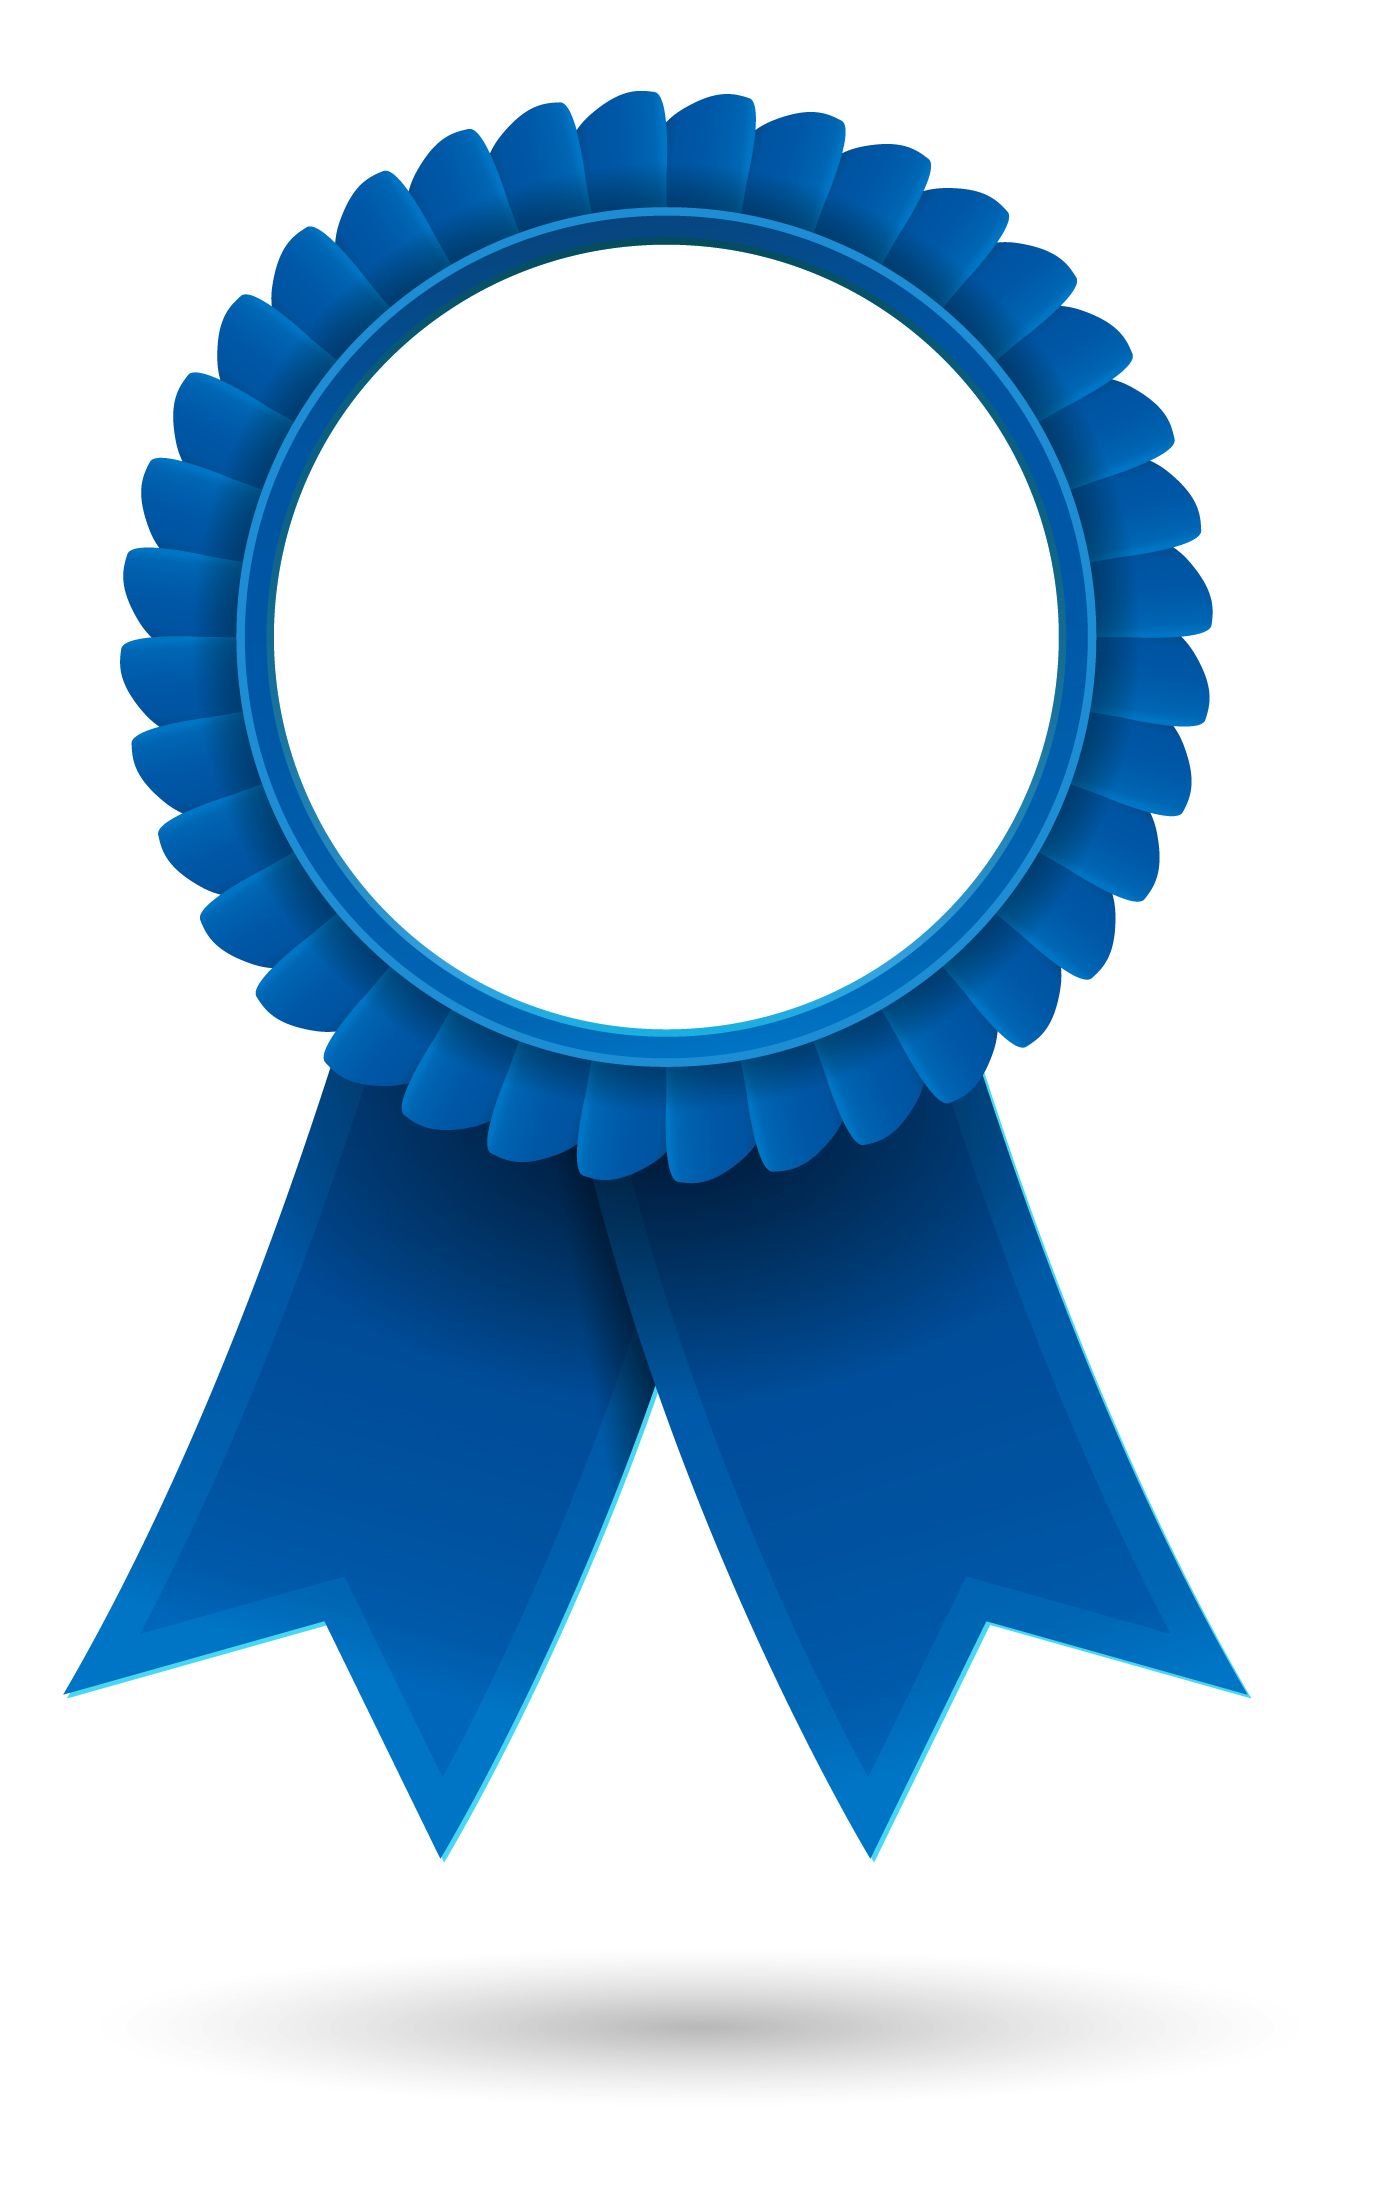 1st prize ribbon template - blue ribbon clipart free download best blue ribbon